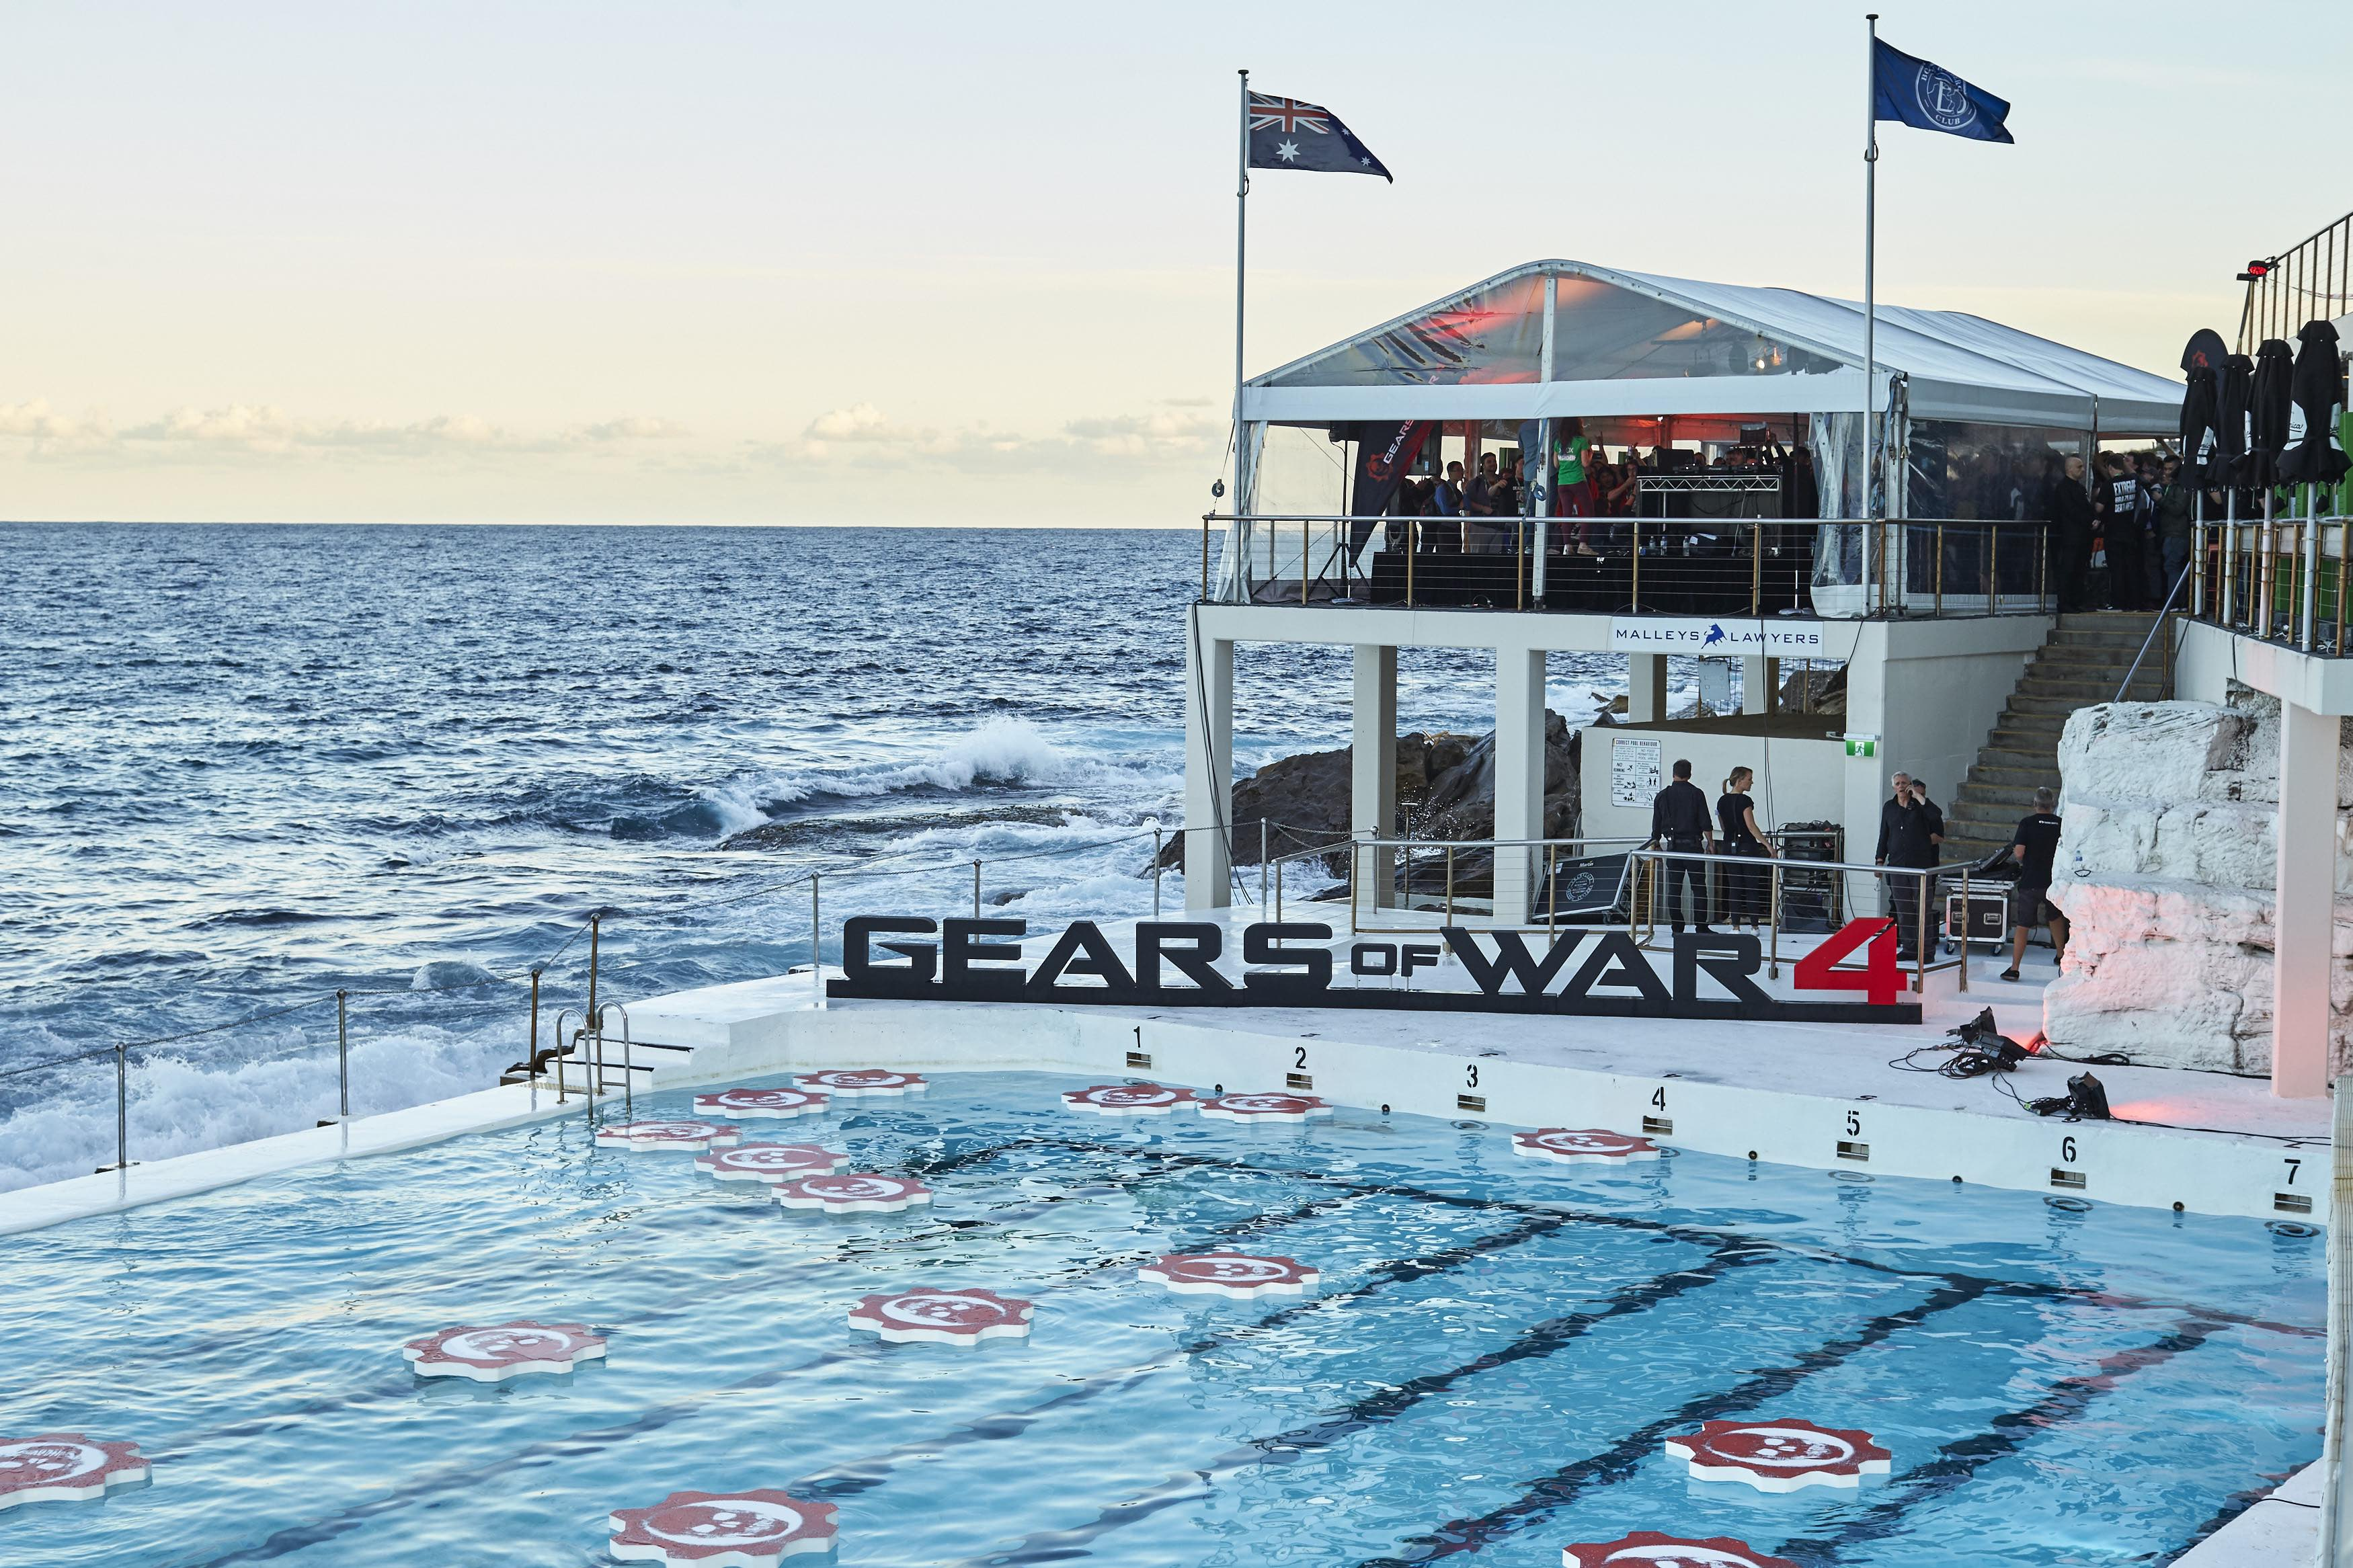 Image 3 - Xbox Fan Fest event at Bondi Icebergs